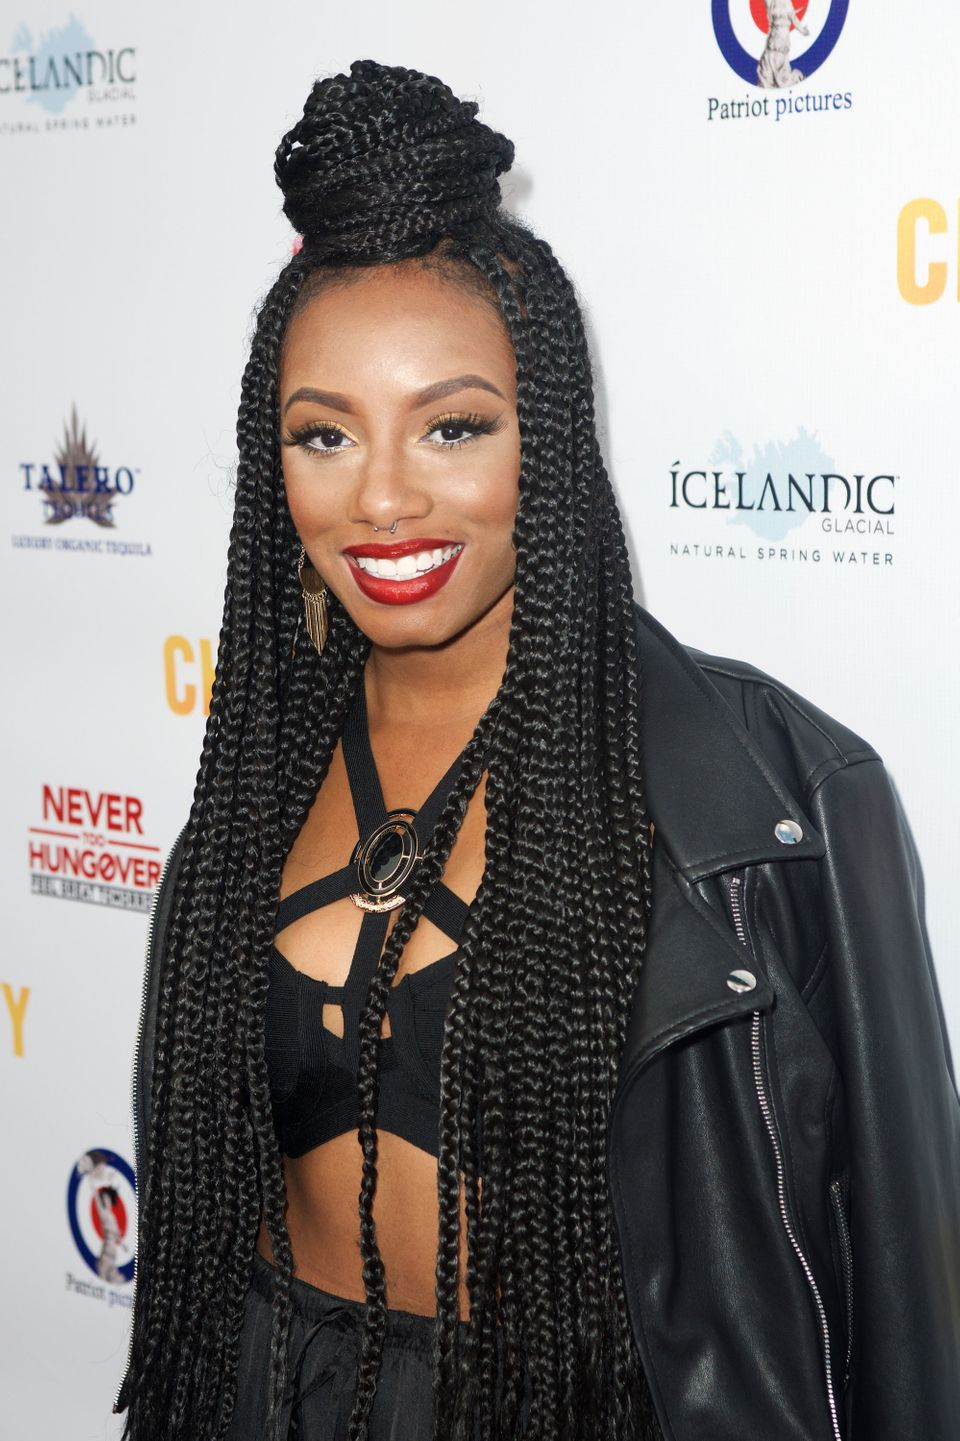 Slightly Thicker Than A Regular Box Braid Wearing These Jumbo Braids Extra Long Will Give You Stand Out Style That S Got More Weight And Presence